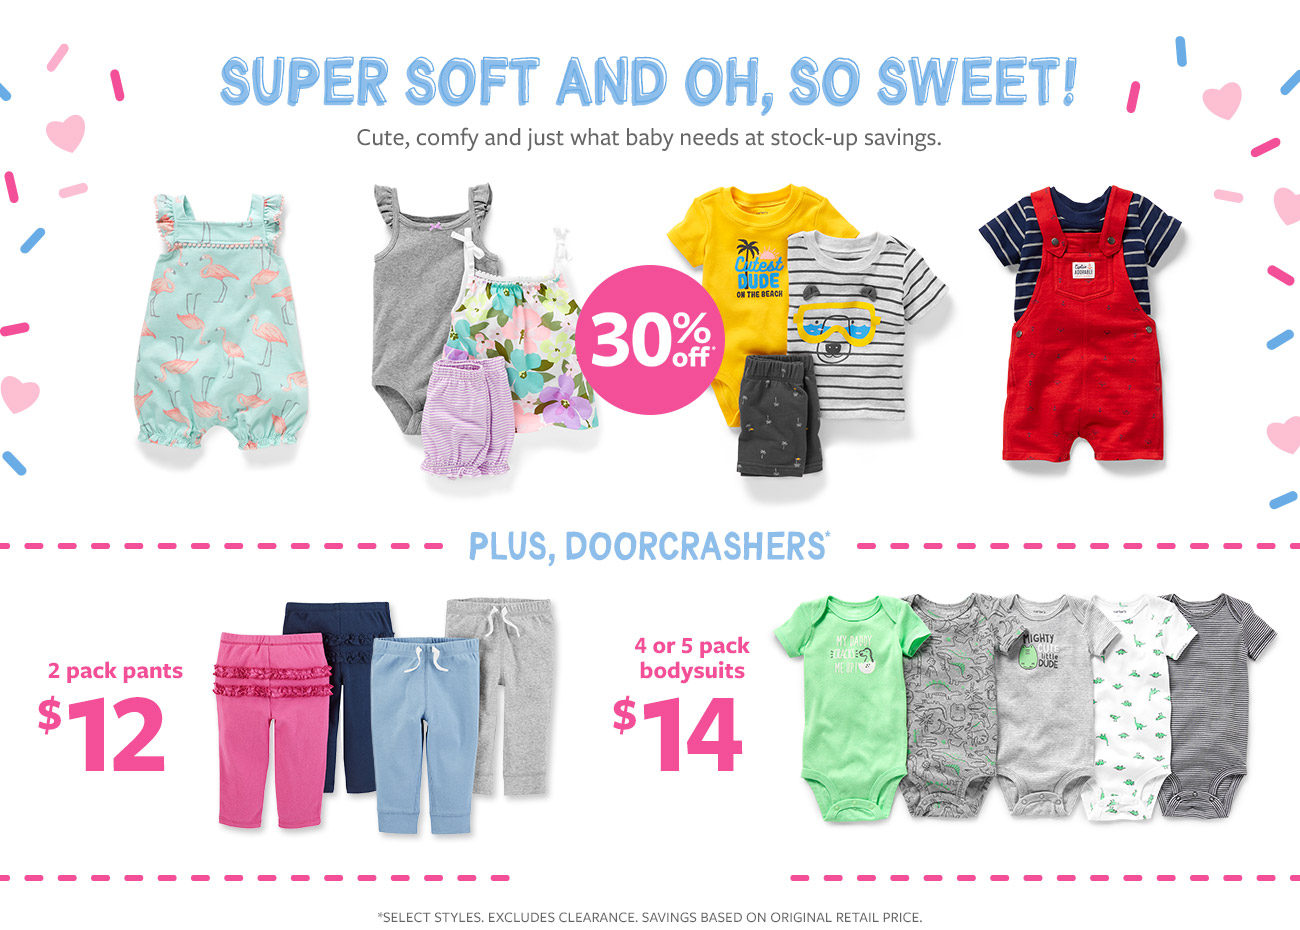 super soft and oh, so sweet! 30% off | plus dorrcrashers' $12 2 pack pants | 4 or 5 pack bodysuits $14